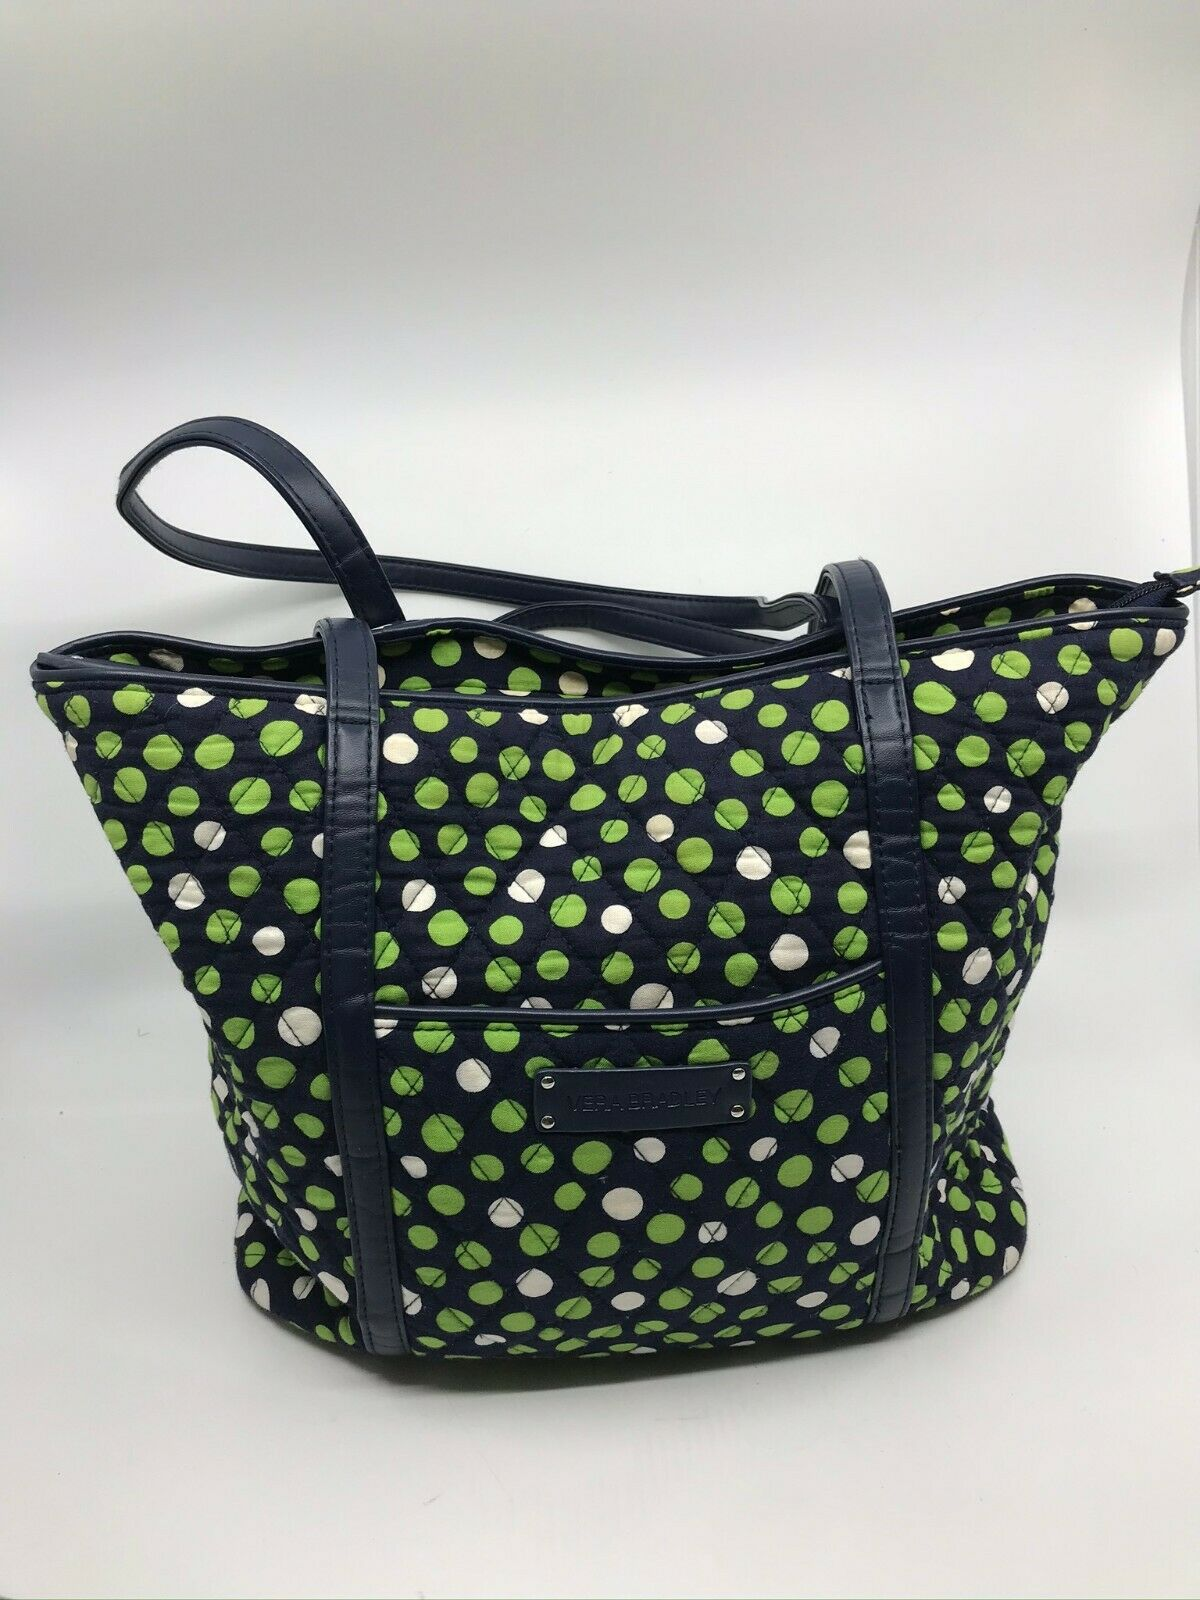 Vera Bradley Large/Medium Shoulder Bag